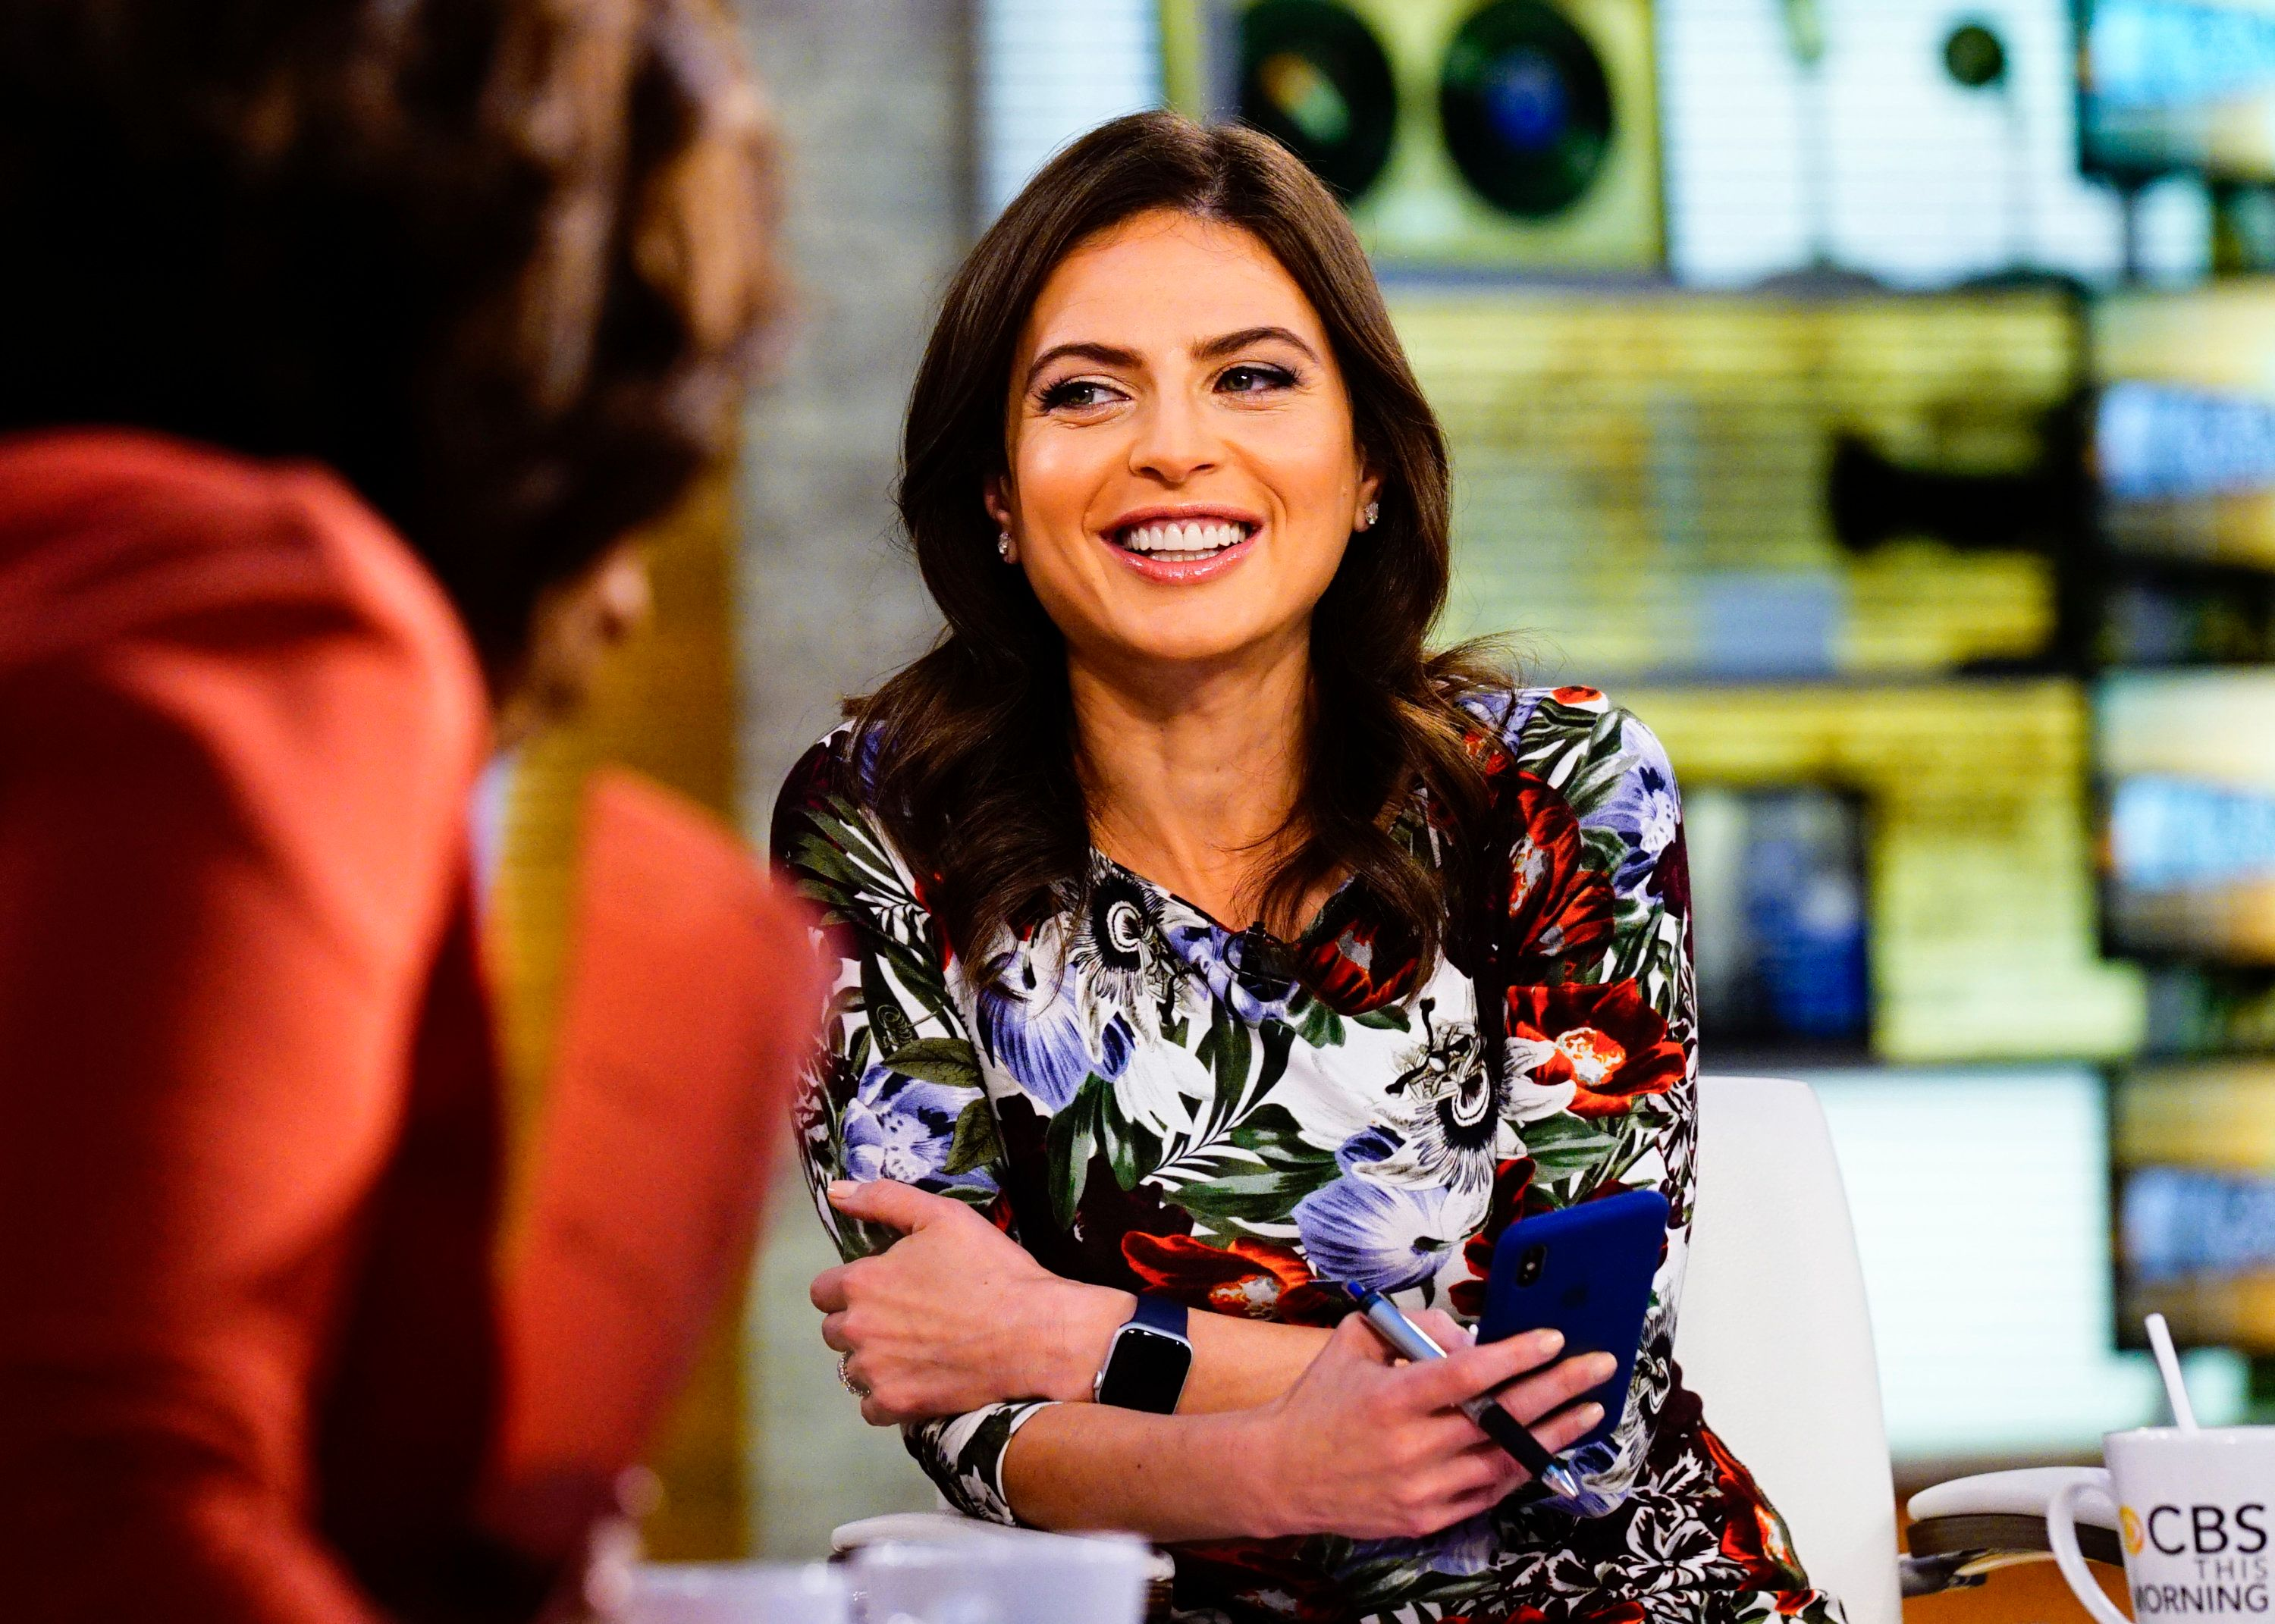 Bianna Golodryga Out At 'CBS This Morning' And Leaving Network, Sources Say (FULL ARTICLE) 5ca33154240000a2074f5a42